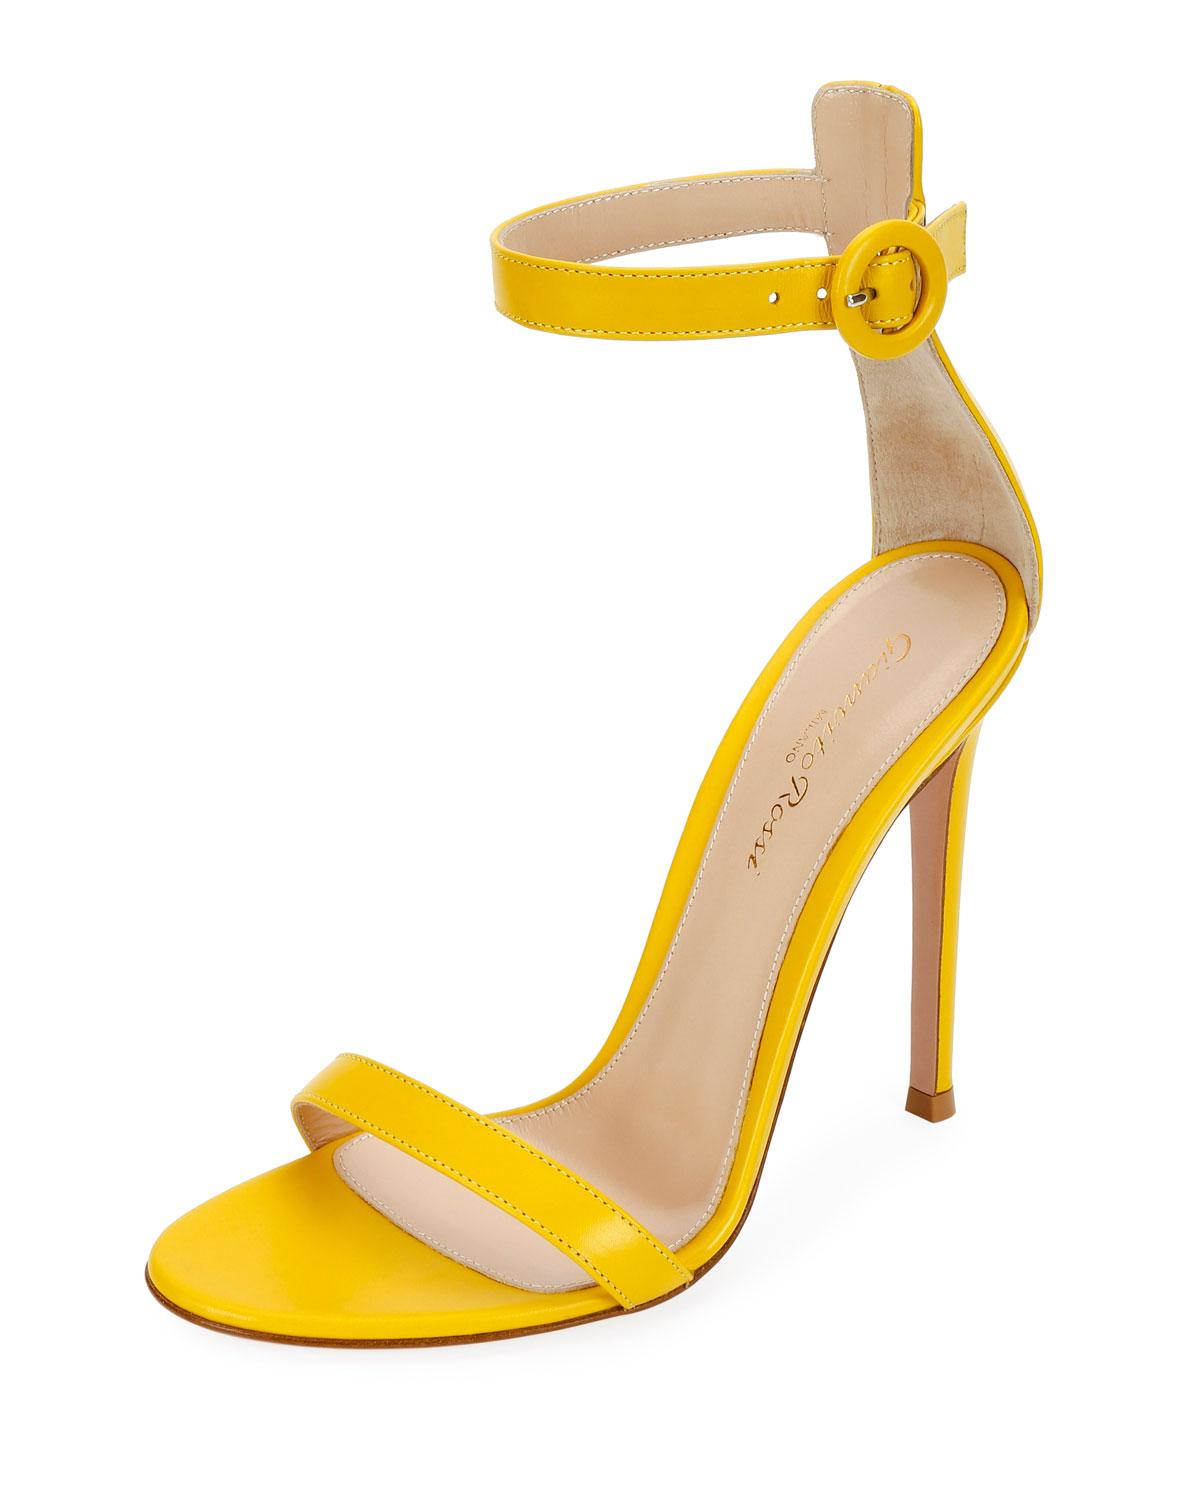 7c71623b26ad Lyst - Gianvito Rossi Leather Ankle-strap Sandals in Yellow